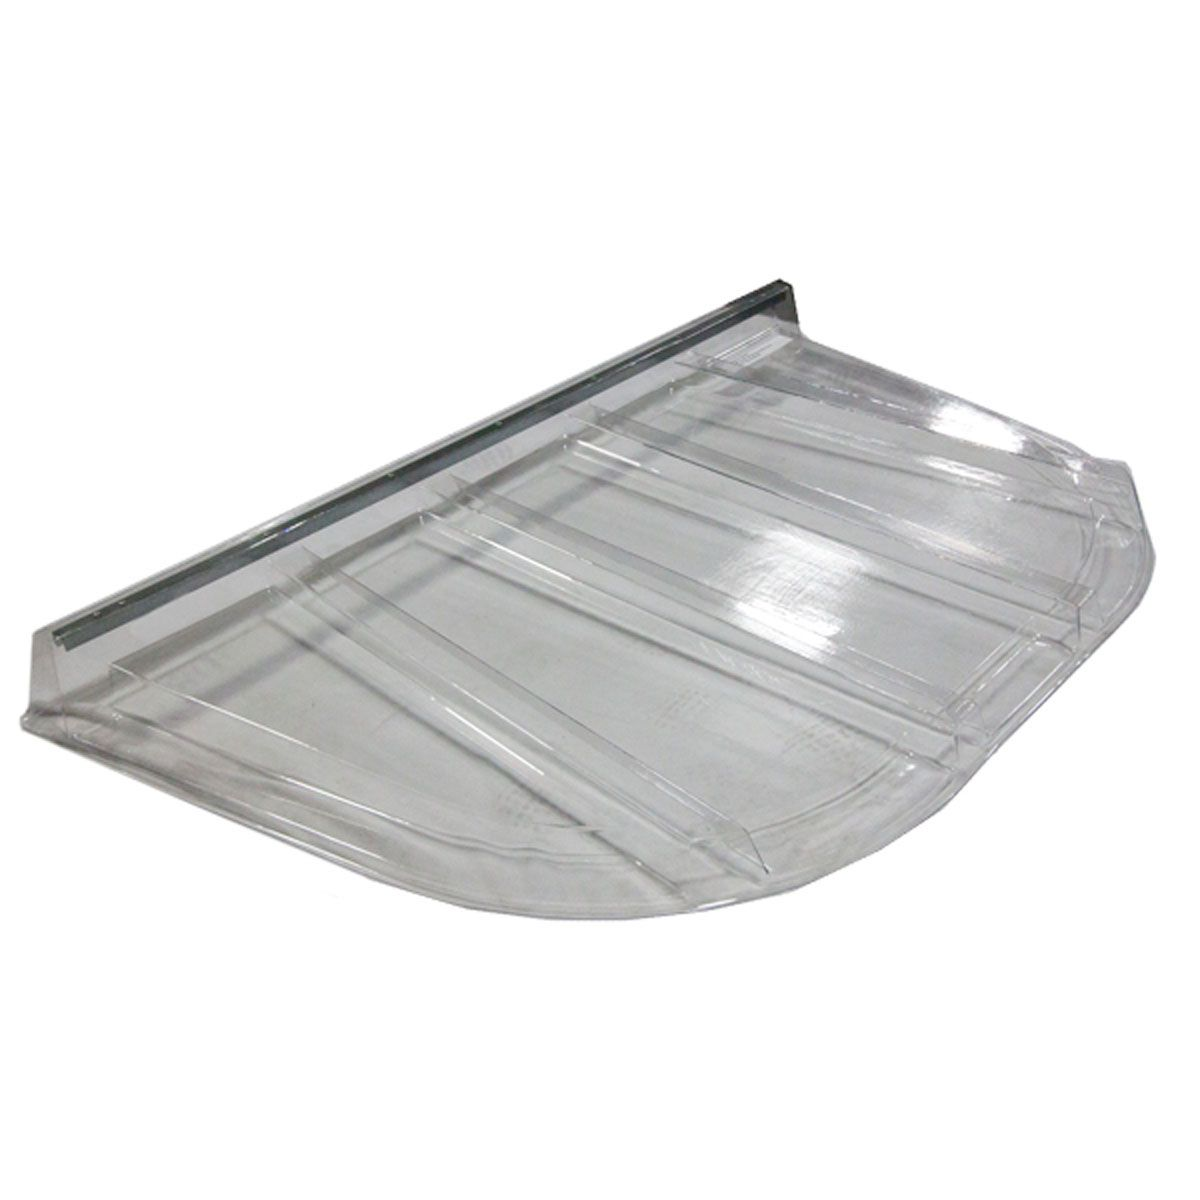 2060 Polycarbonate Cover 75 Inch W X 46 Inch D Supports Up To